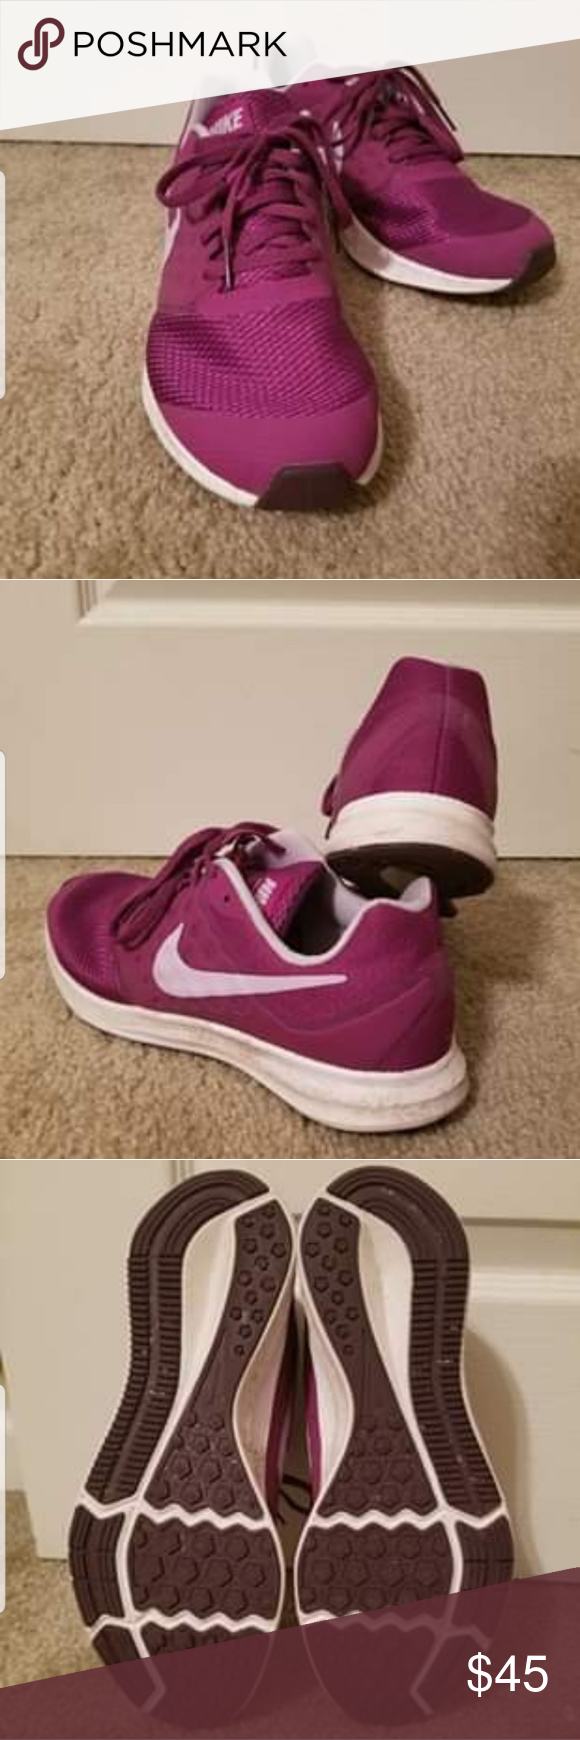 Bright purple Nike tennis shoes These bright tennis shoes are sure to get attent